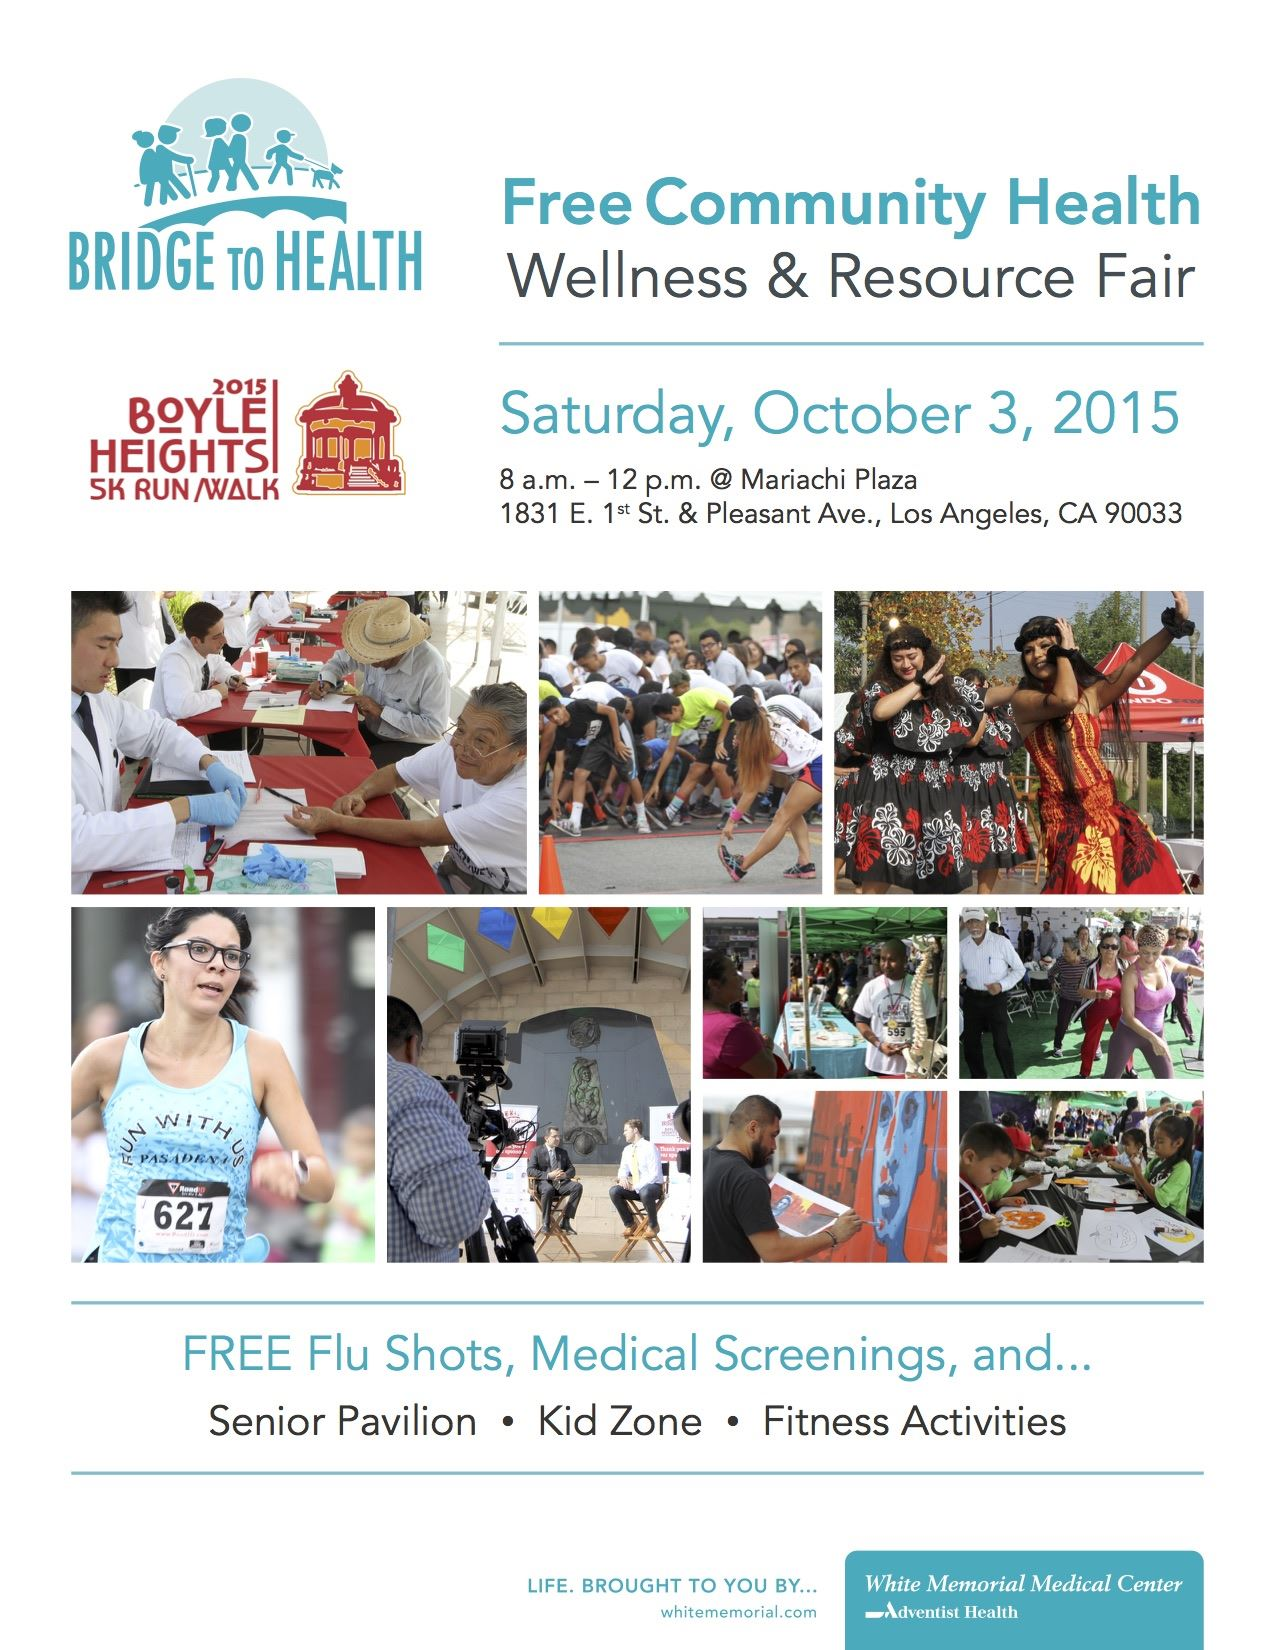 free community health wellness & resource fair flyer